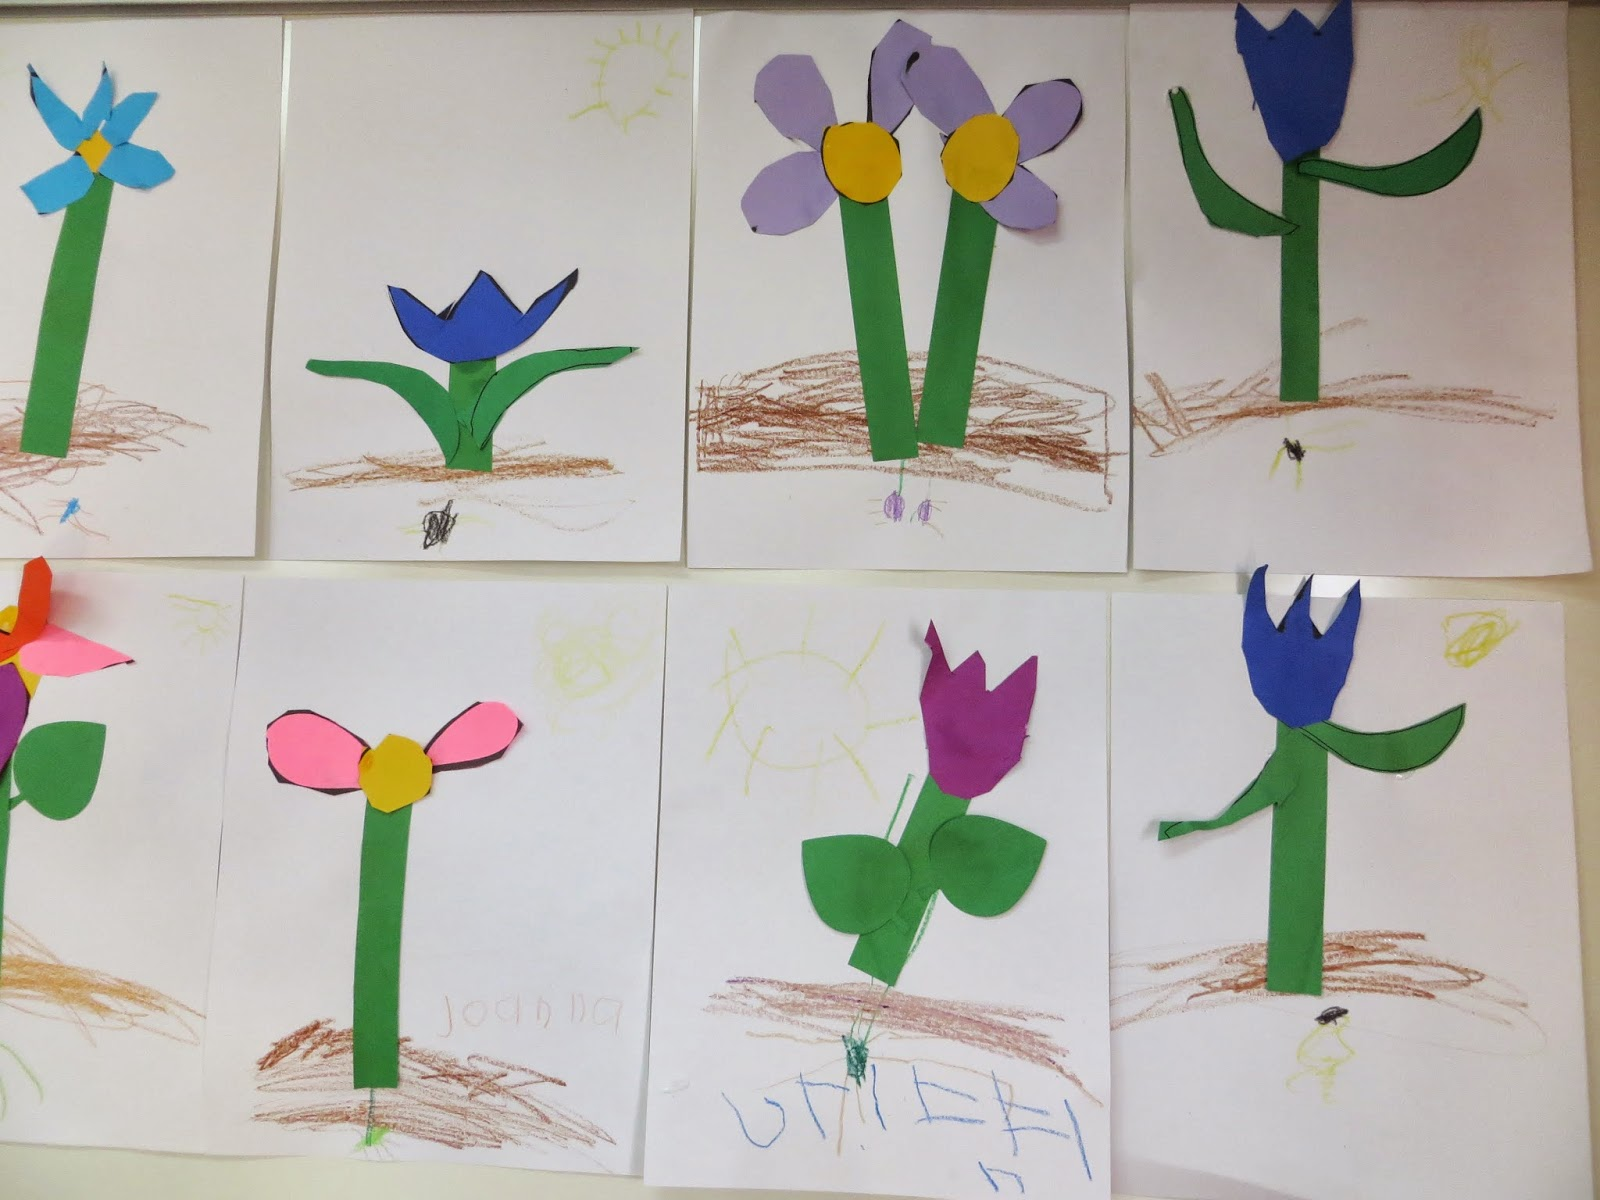 Preschool For Rookies: From a Seed to a Flower